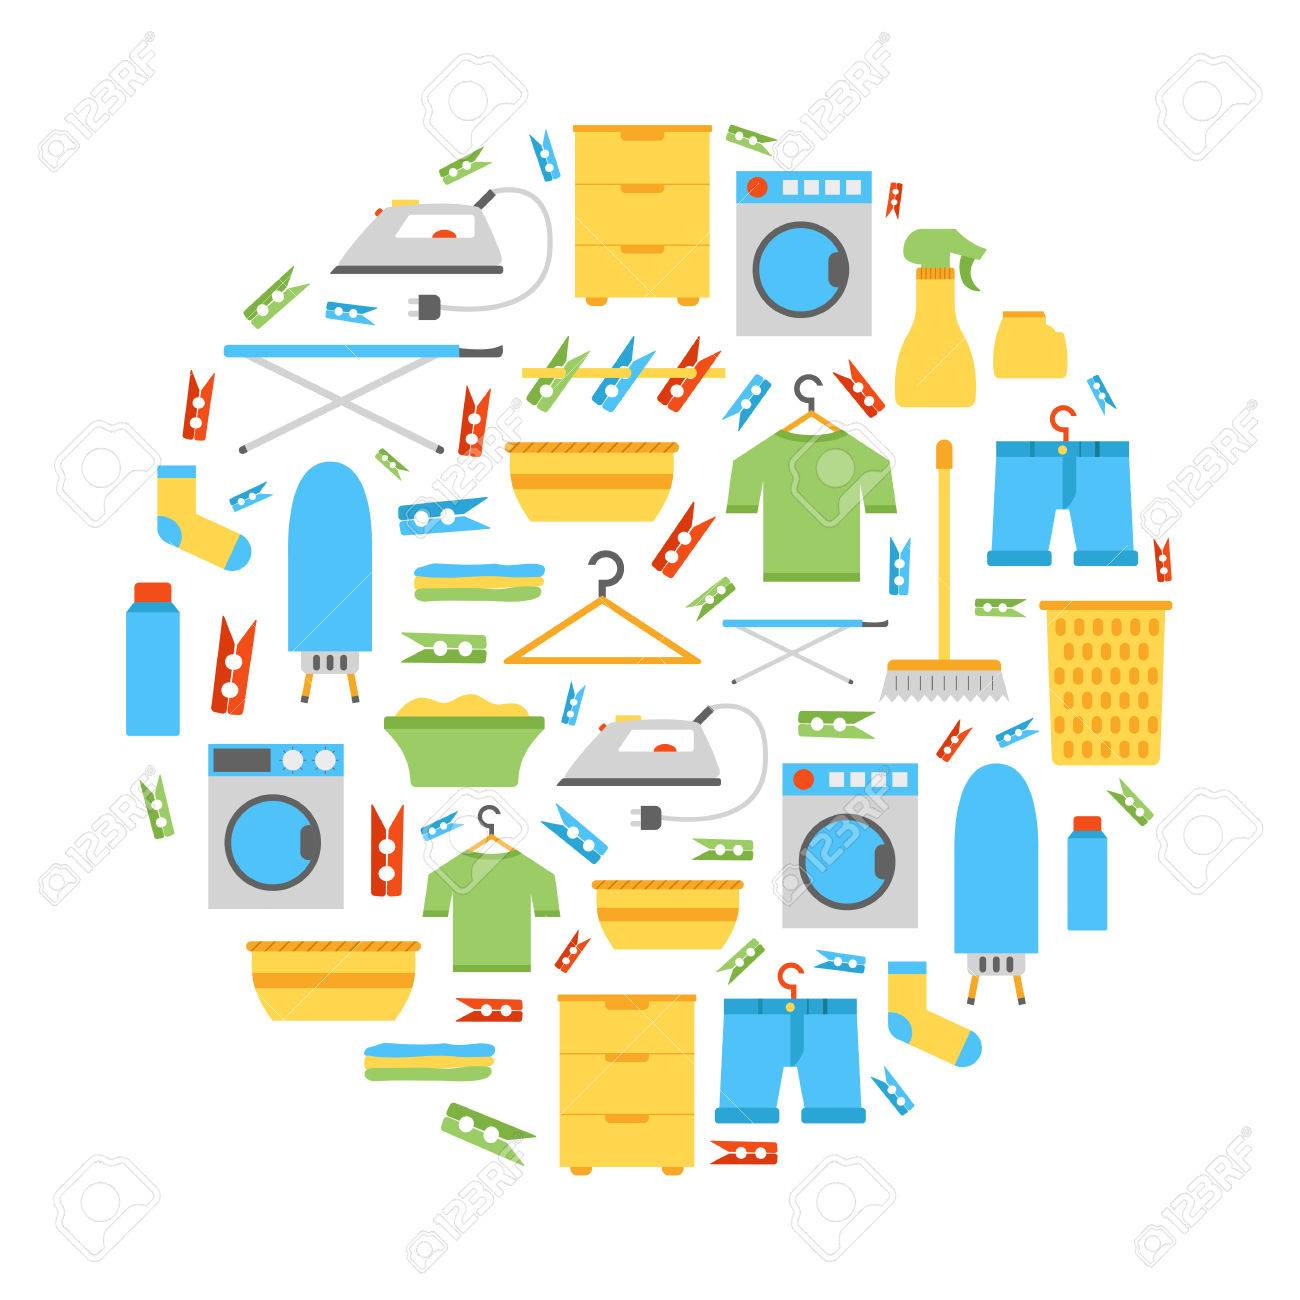 washing machine and dryer clipart. vector illustration with flat laundry room background. washing machine, dryer, iron, clothes machine and dryer clipart